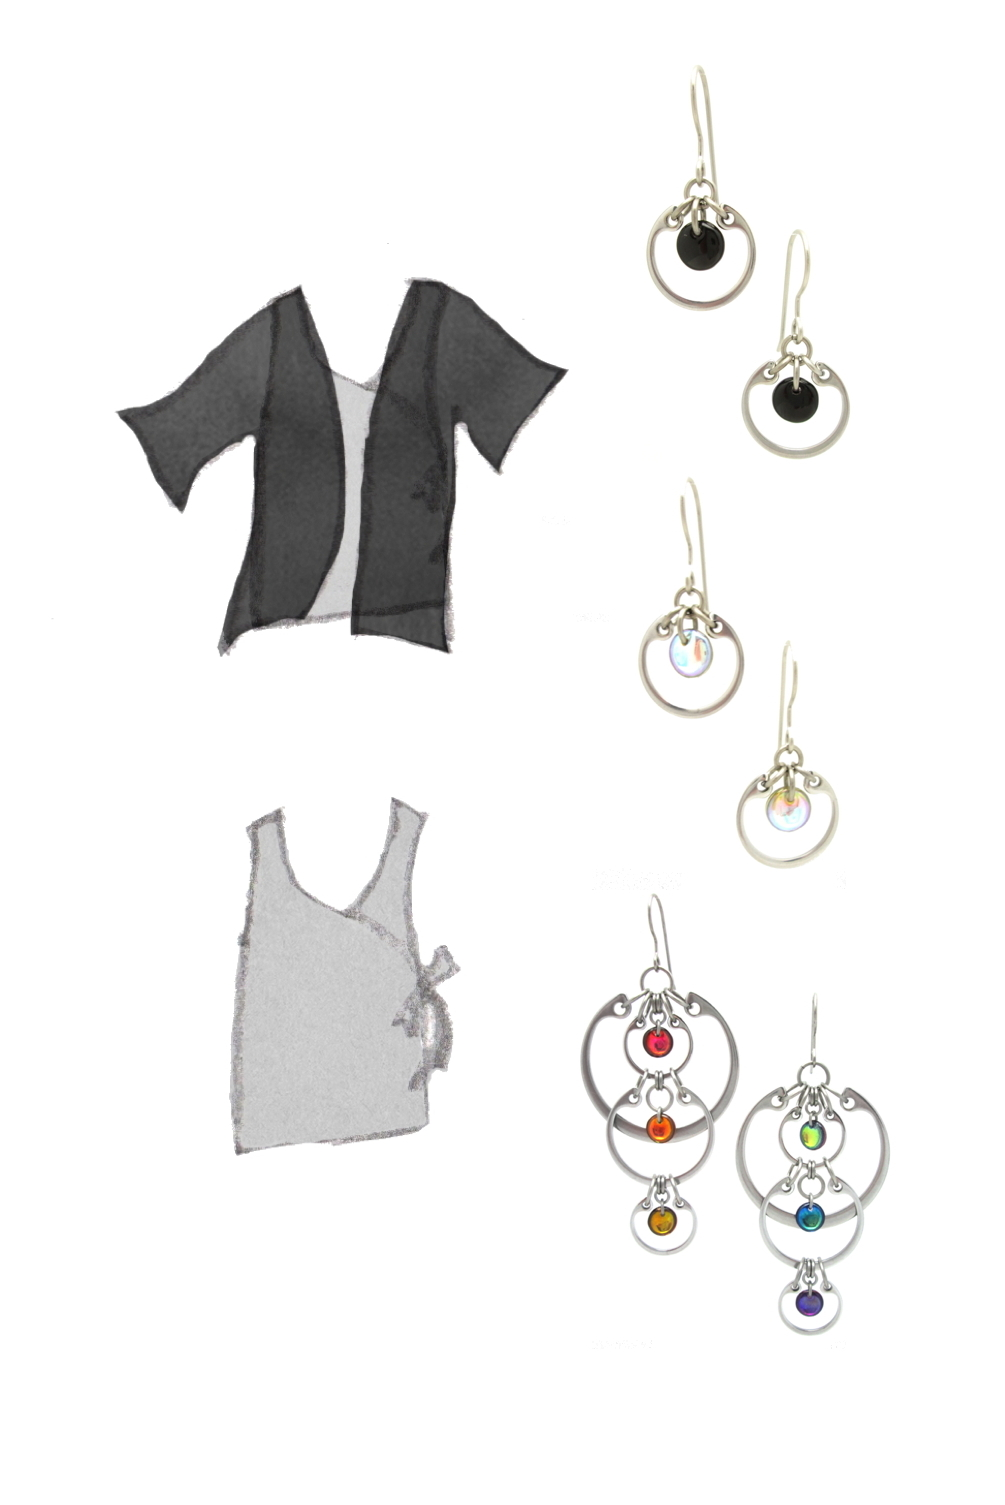 style sketch of a sleeveless gray wrap top with and without a short-sleeve black cardigan, with photos of Wraptillion's Small Circle Earrings in black and pale rainbow, plus the Cascading Rainbow Earrings.